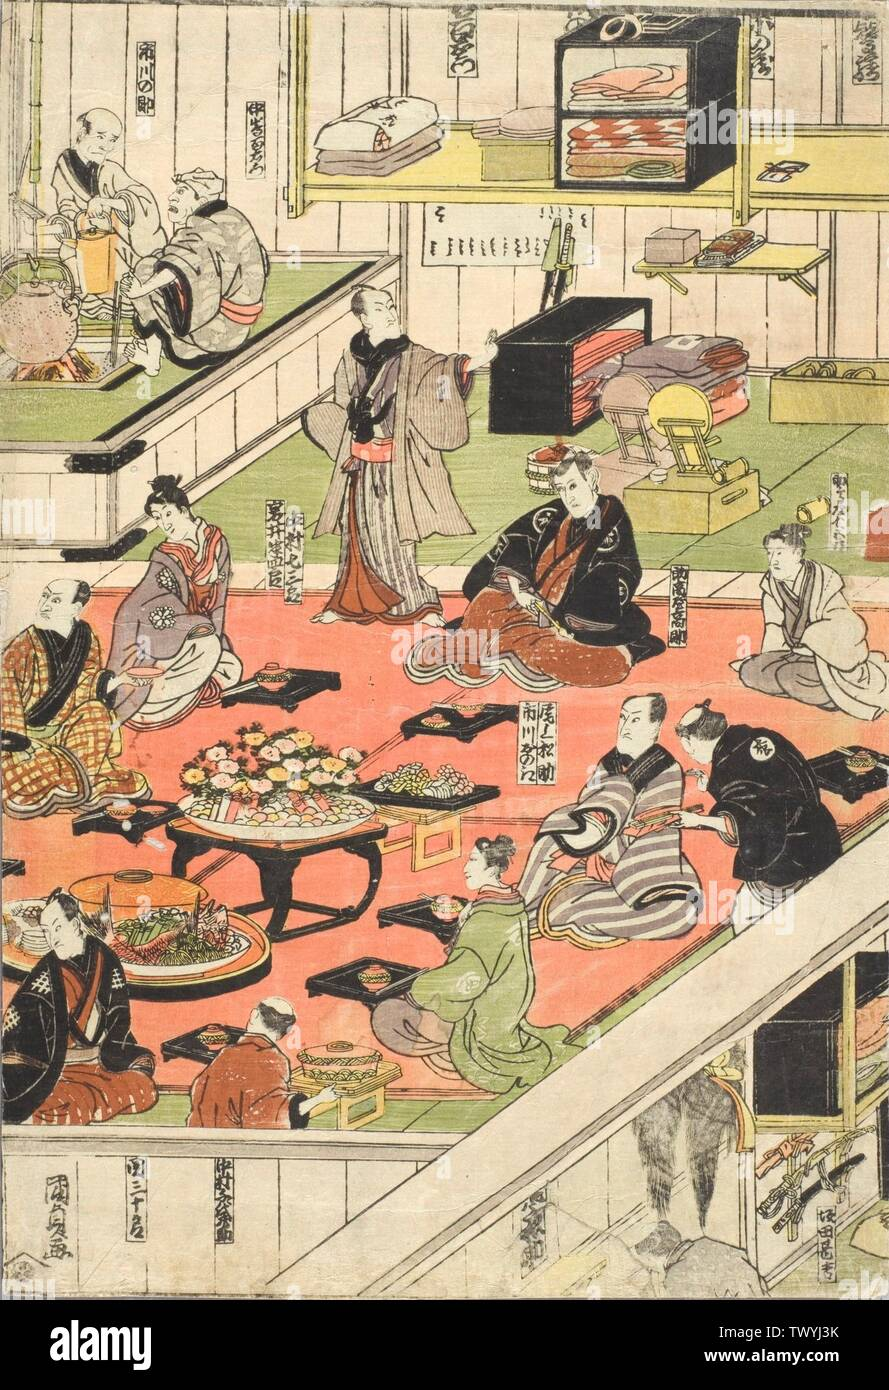 'Backstage at an Edo Kabuki Theater; English:  1810s Prints; woodcuts Color woodblock print; one sheet of a diptcyh Image and Sheet:  14 11/16 x 10 in. (37.31 x 25.4 cm) The Joan Elizabeth Tanney Bequest (M.2006.136.306) Japanese Art; 1810s date QS:P571,+1810-00-00T00:00:00Z/8; ' - Stock Image